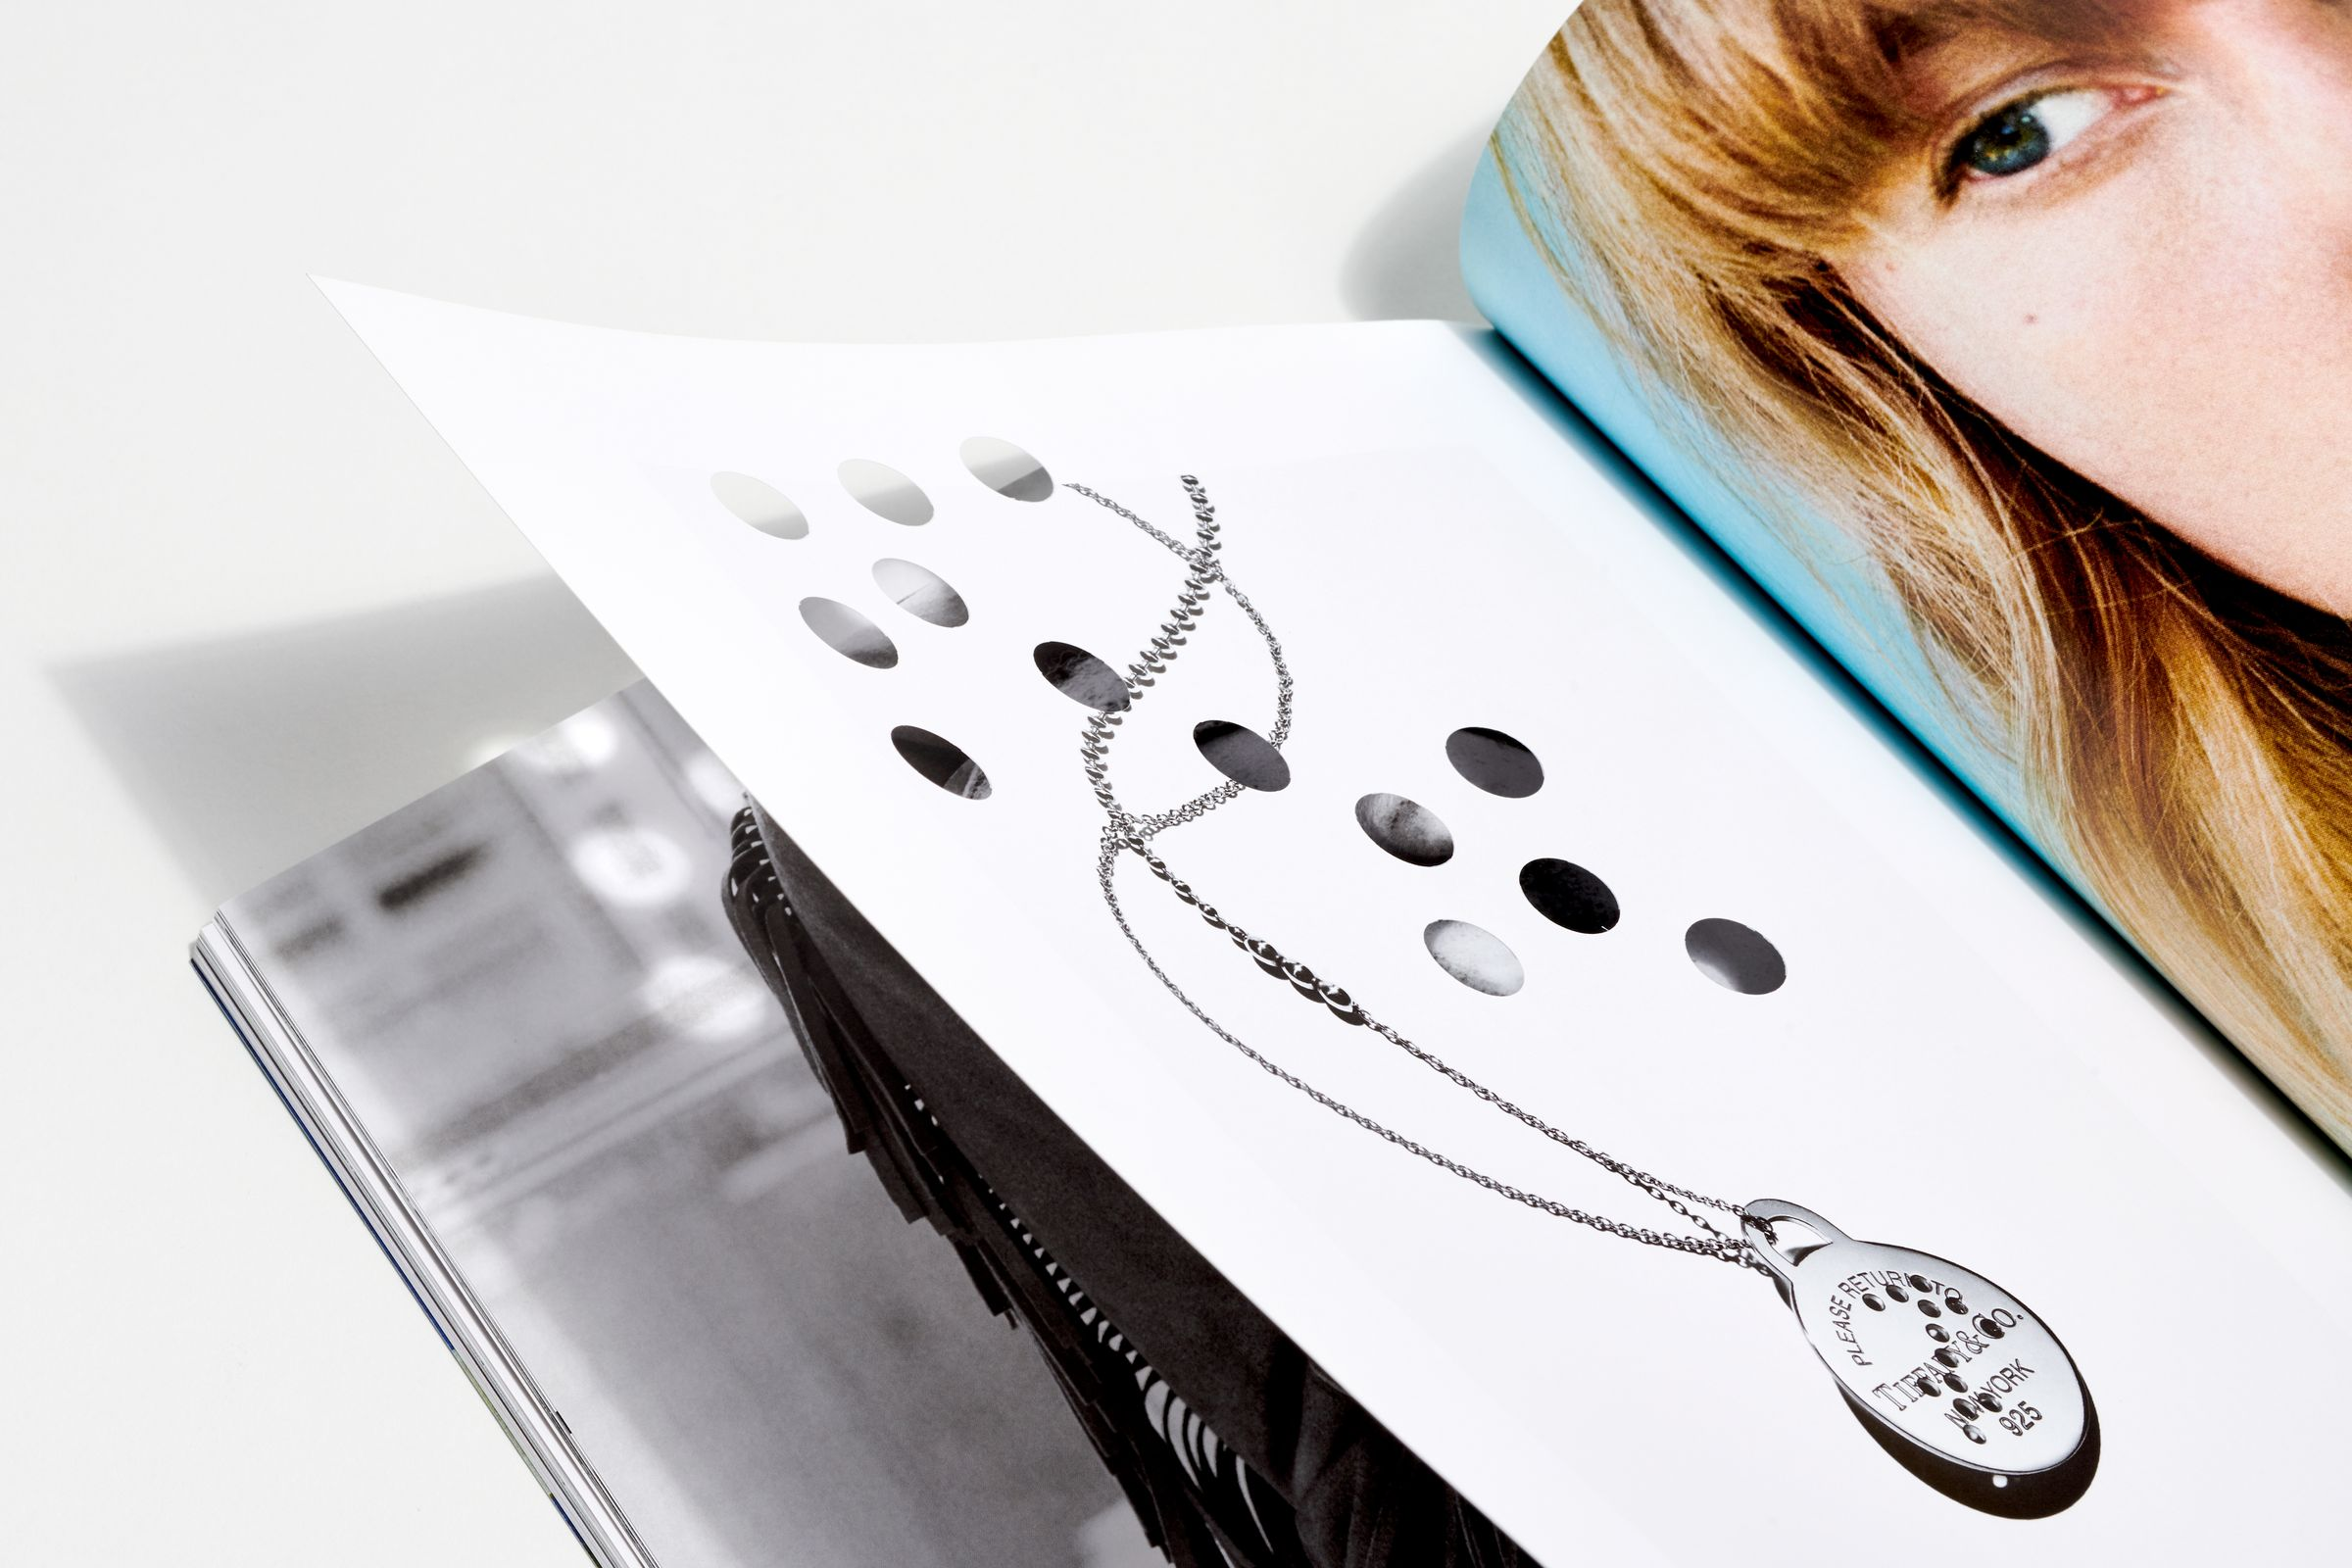 This is Tiffany magazine Issue 6 die-cut page detail